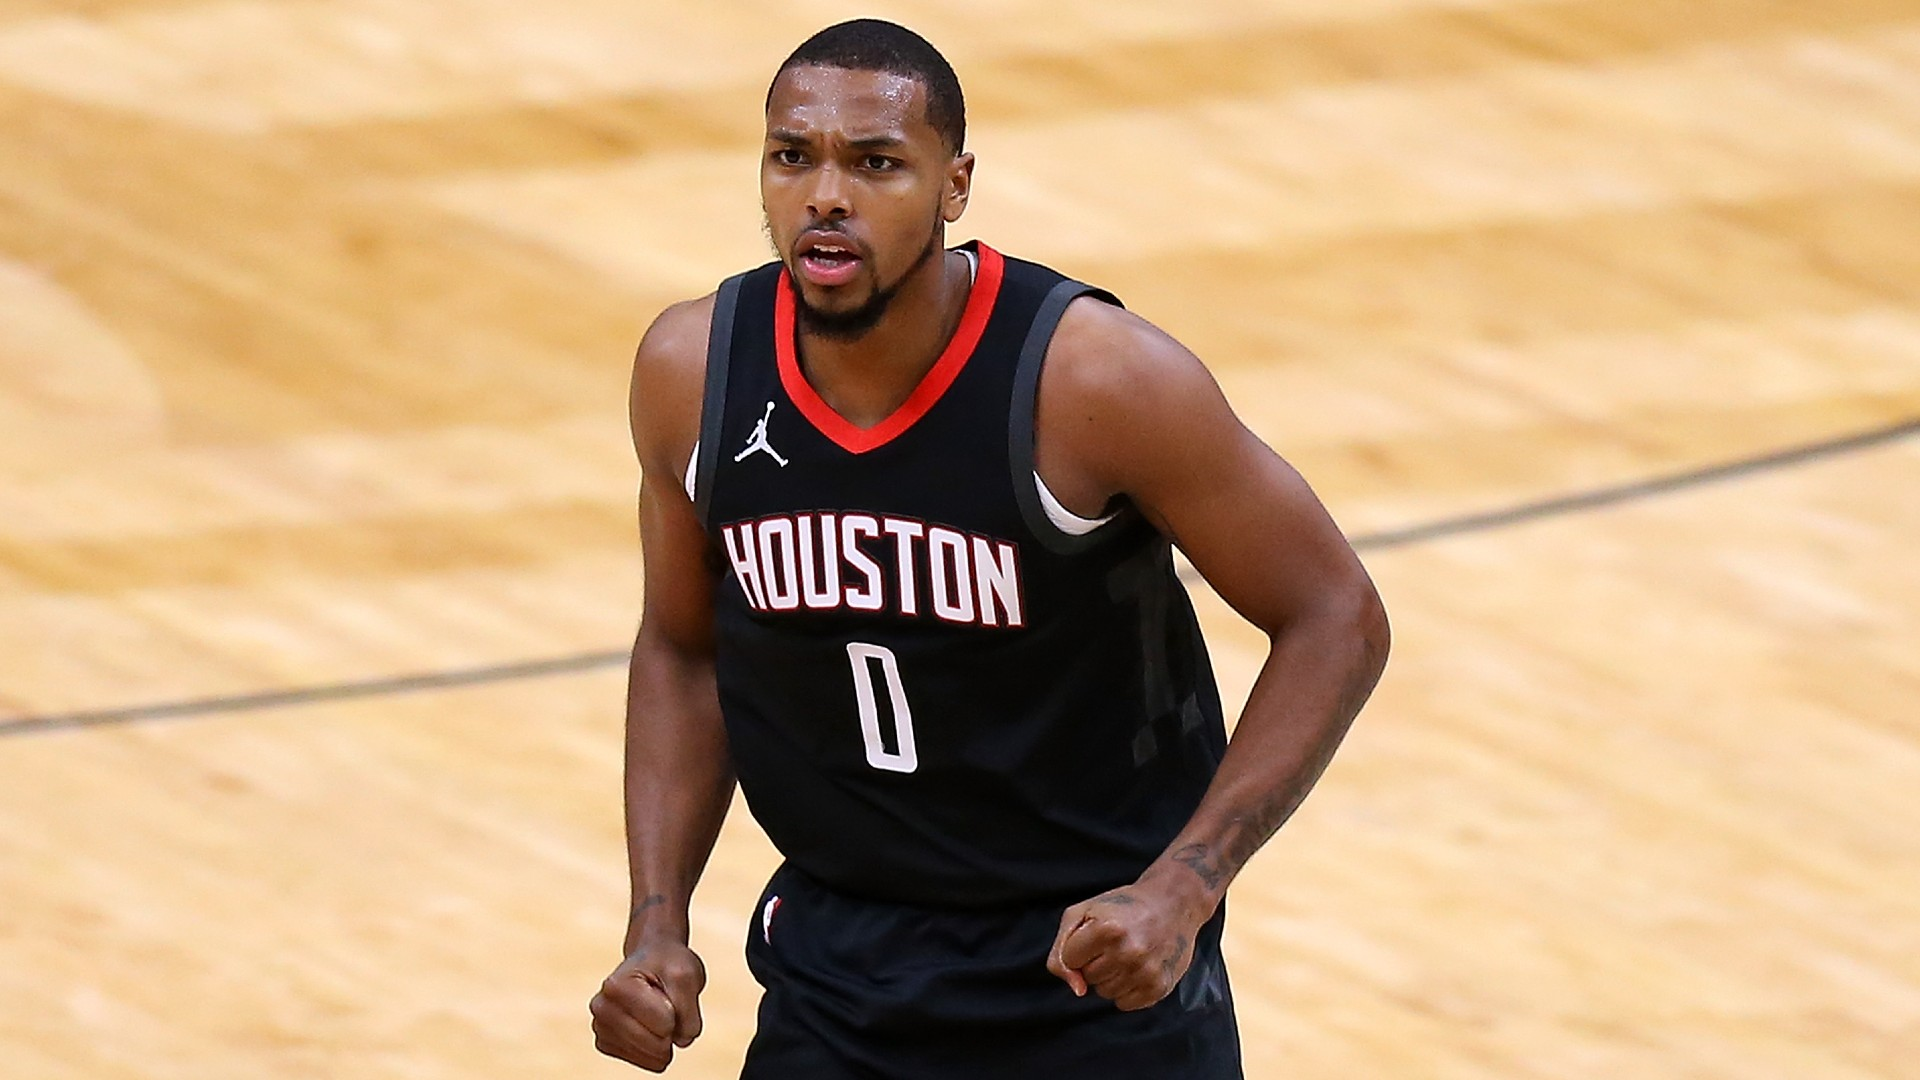 Rockets' Sterling Brown expected to make a full recovery after suffering facial lacerations in assault